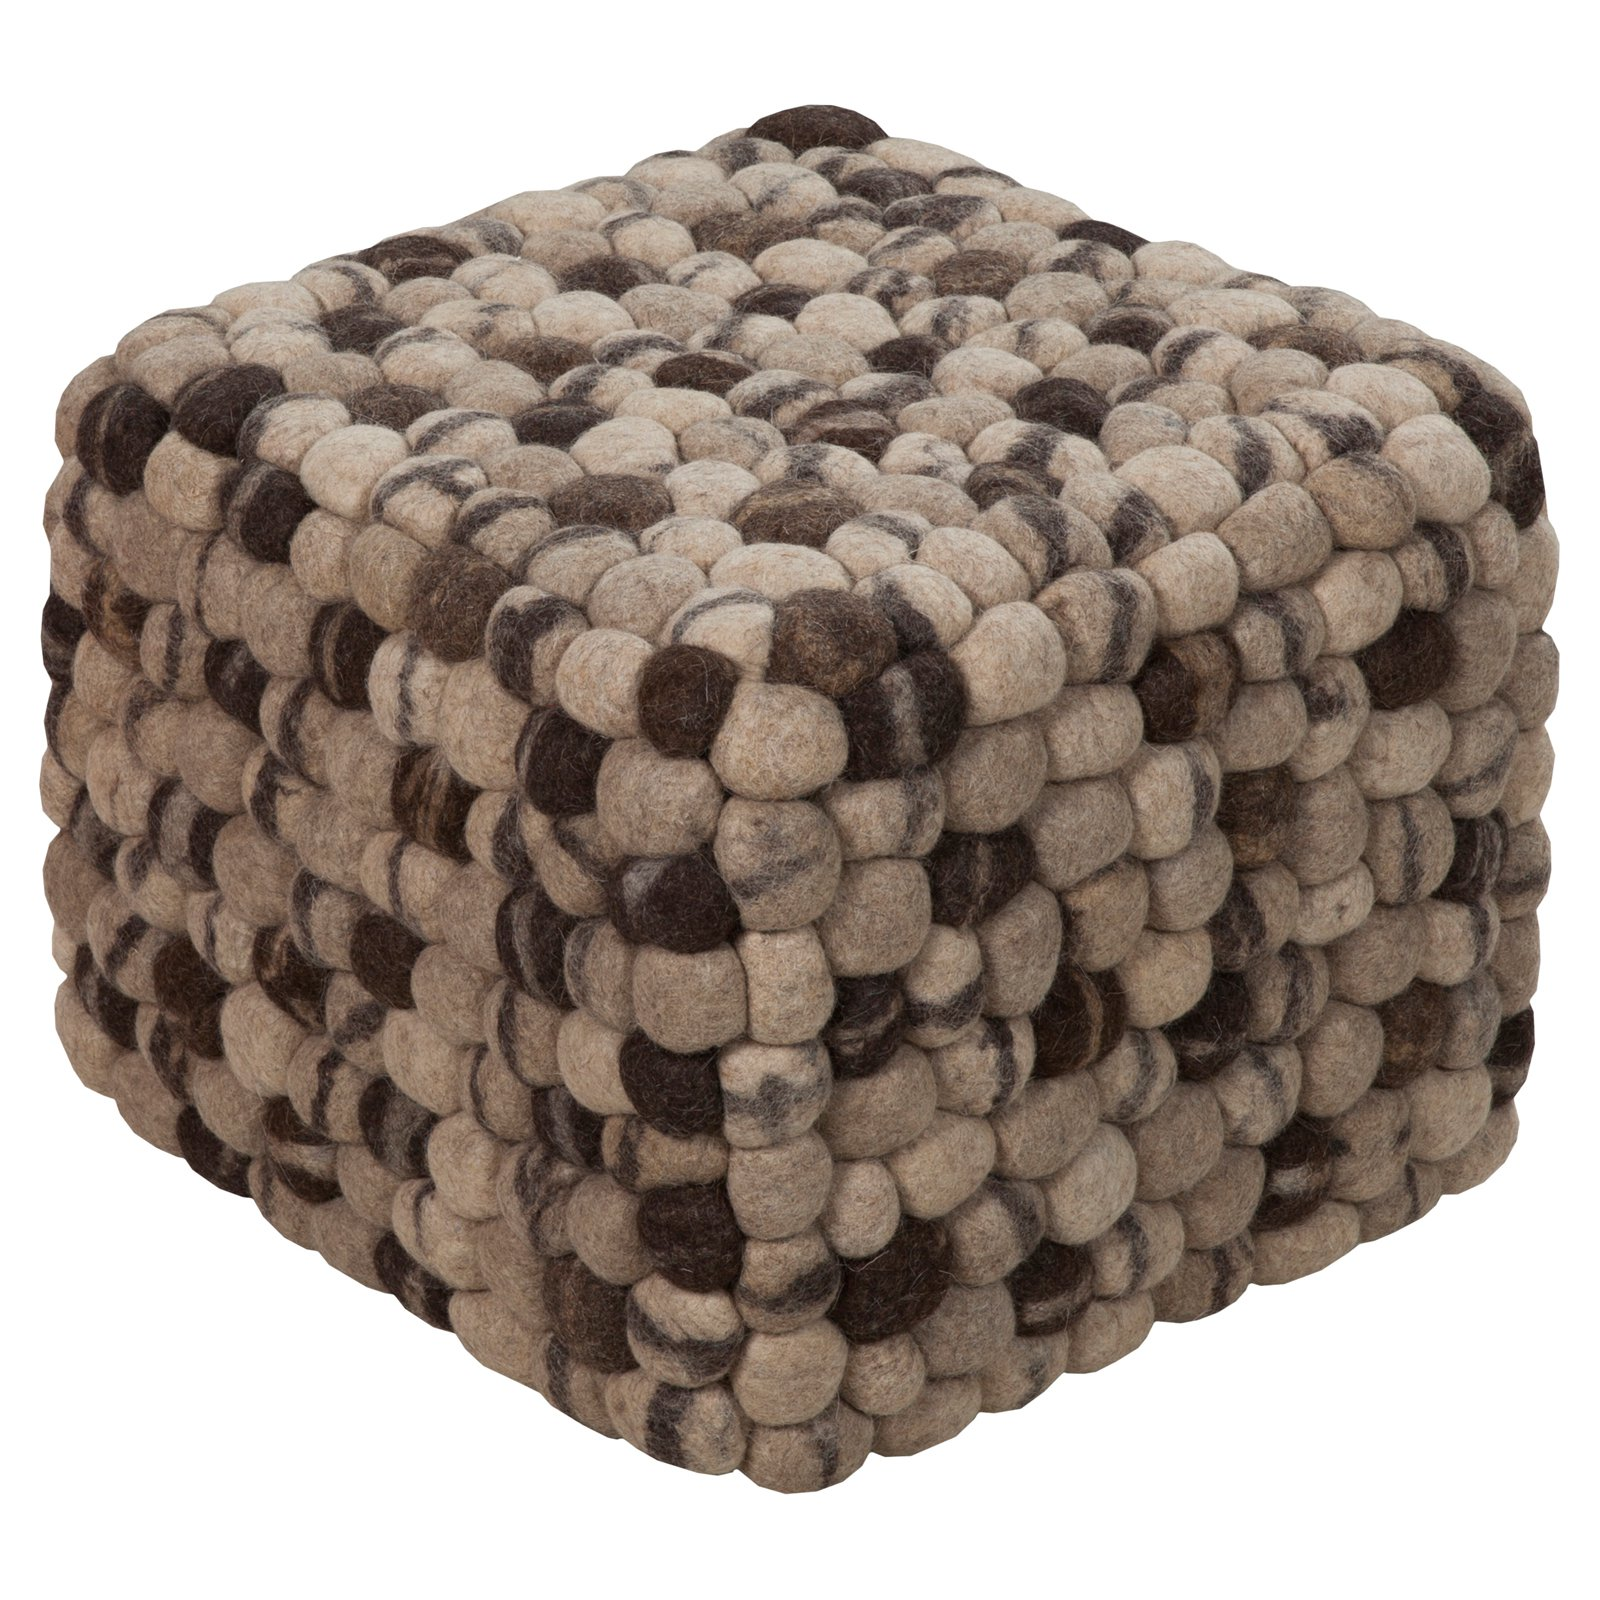 Surya 18 in. Pebble Square Wool Ottoman by Surya